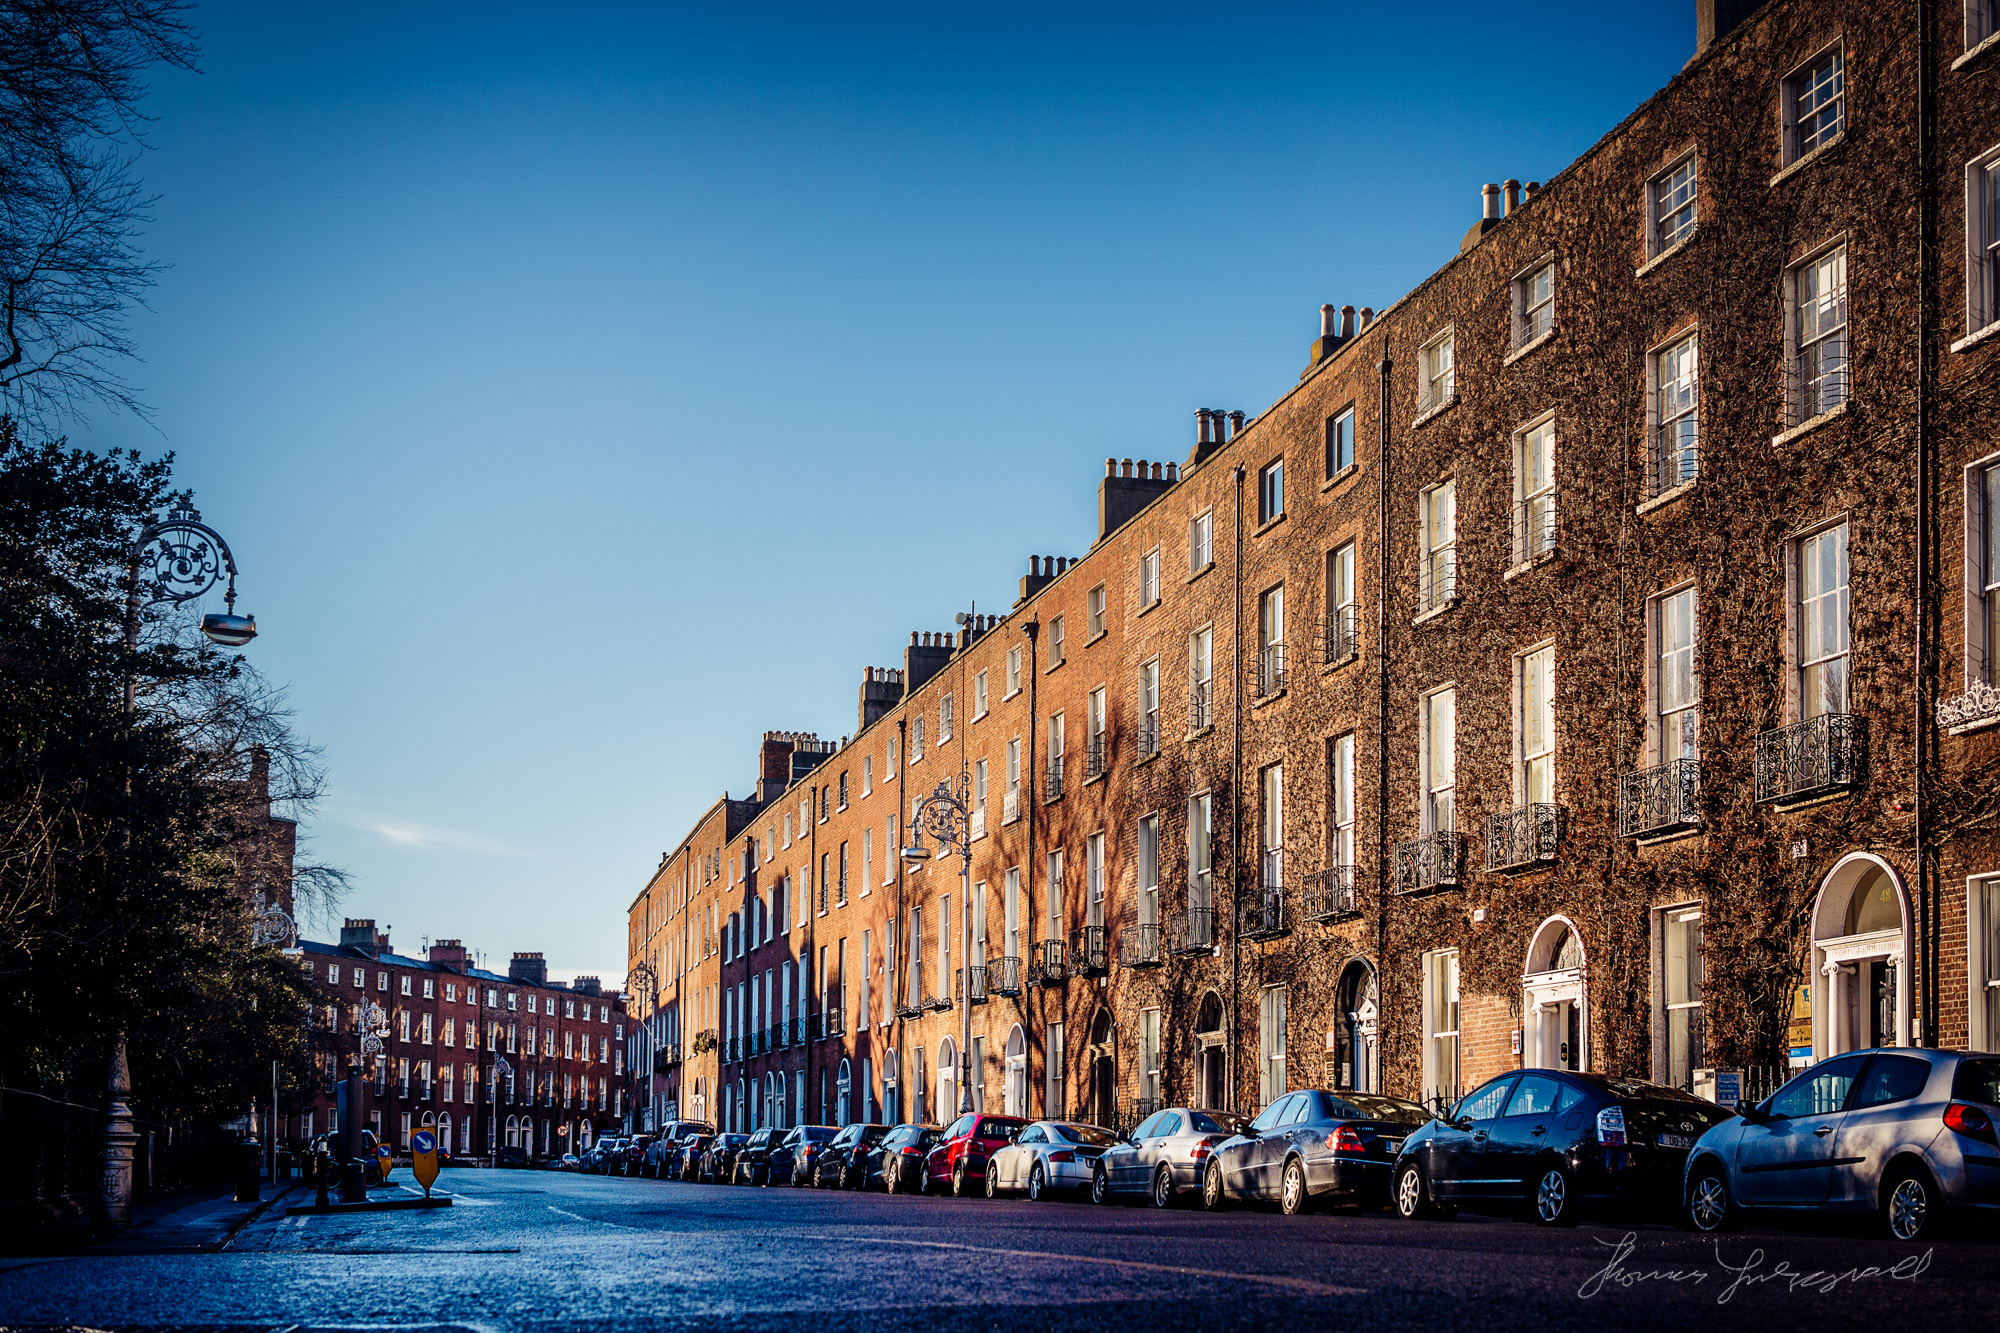 Pembroke Street in the beautiful light of the Irish winter morni